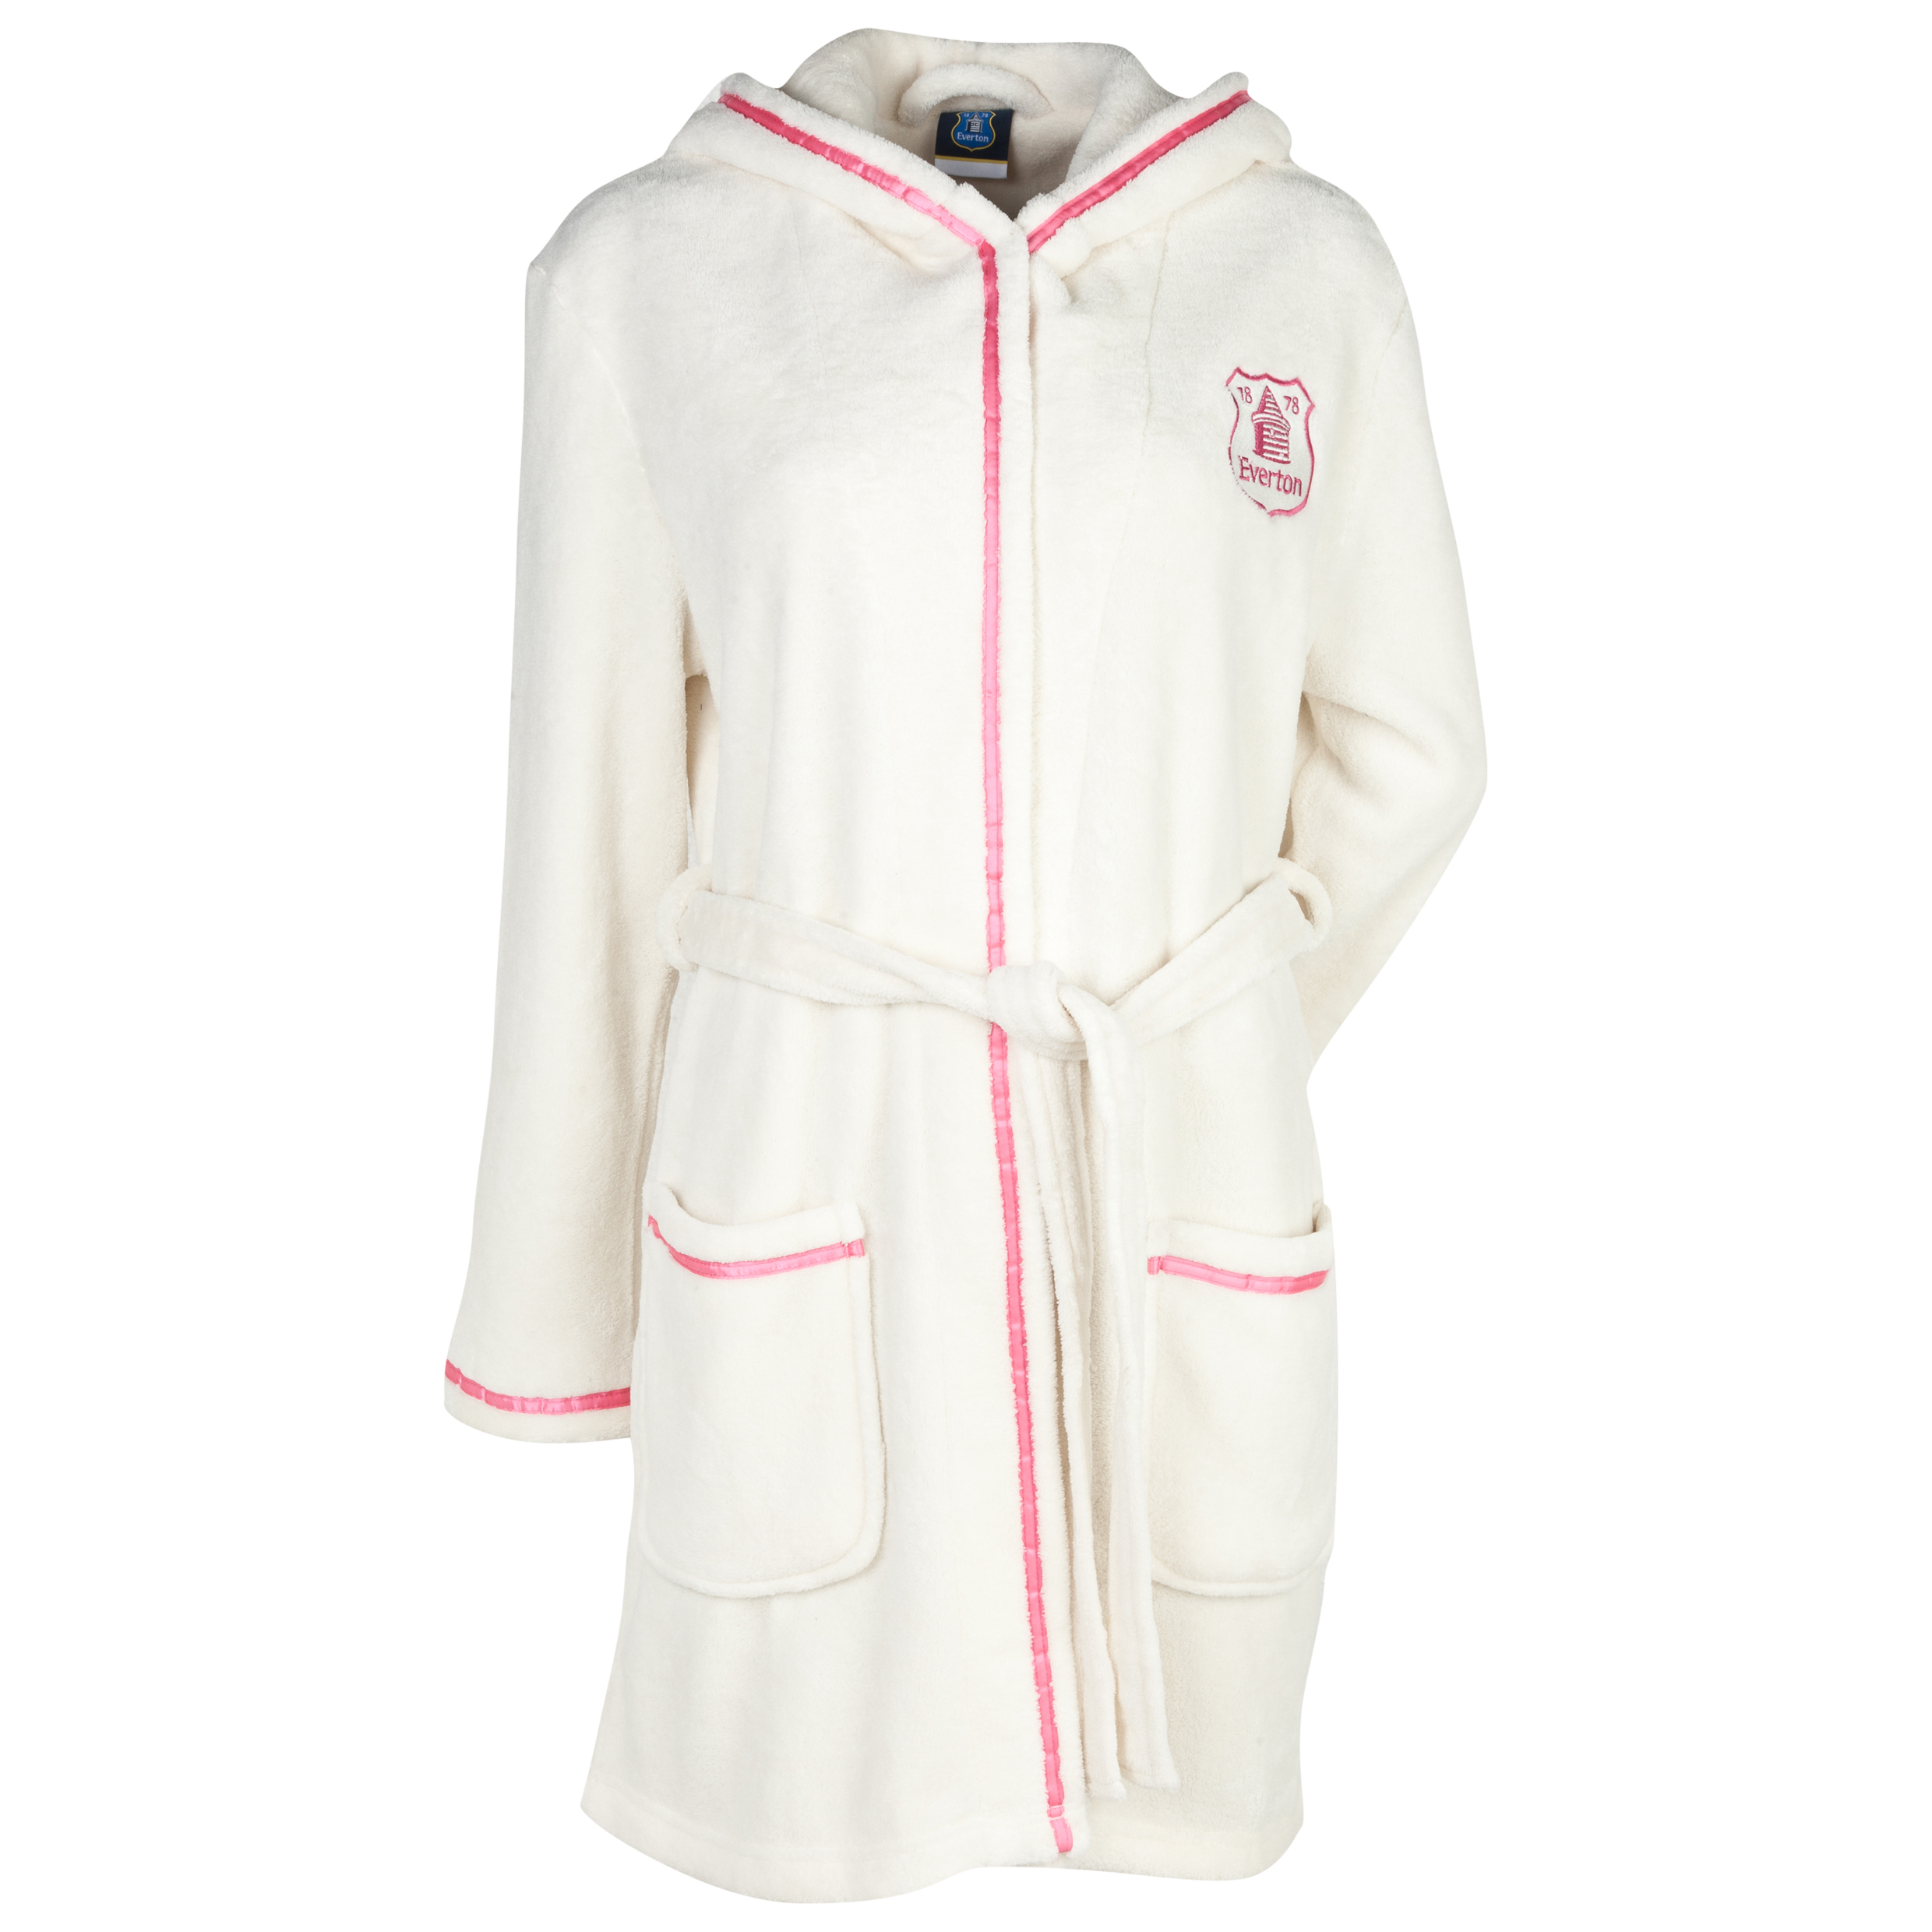 Everton Robe Womens Cream